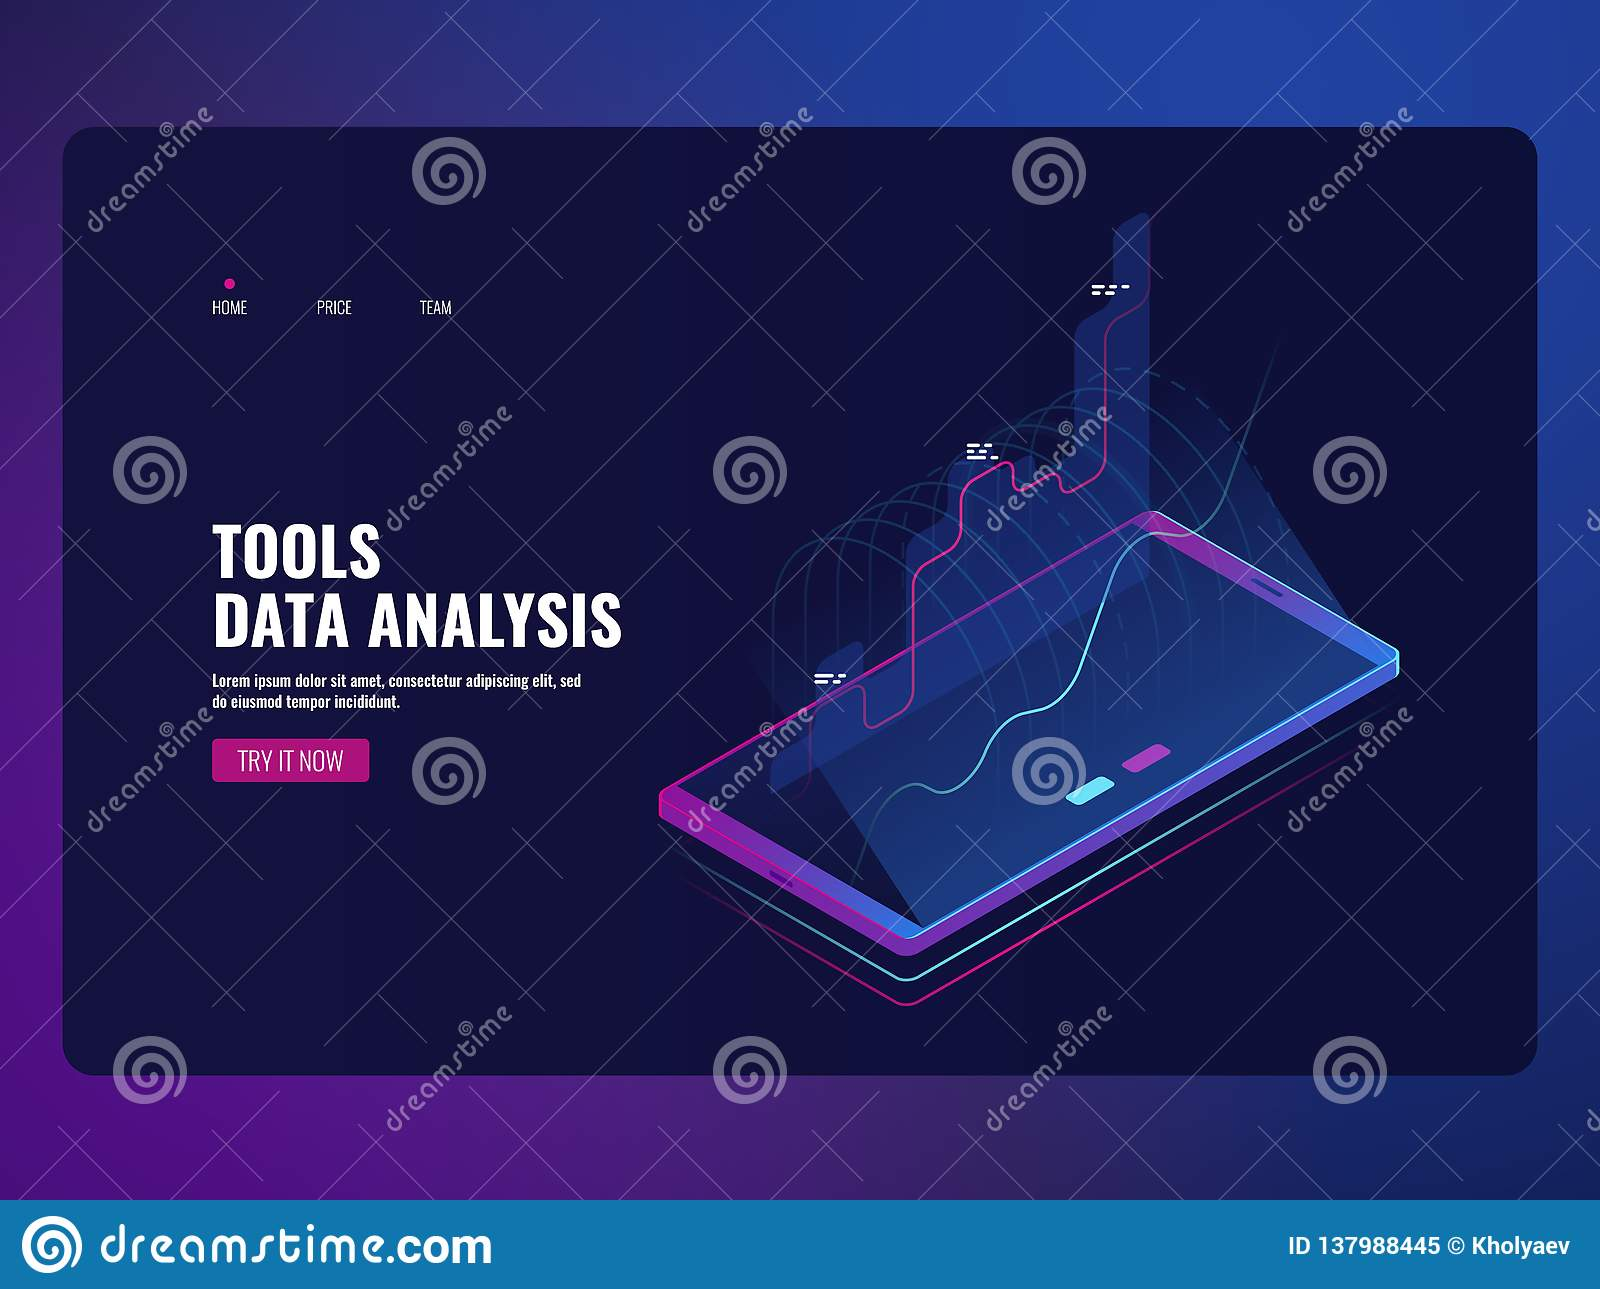 Mobile service data analysis and information statistic, financial report, online bank icon isometric vector illustration